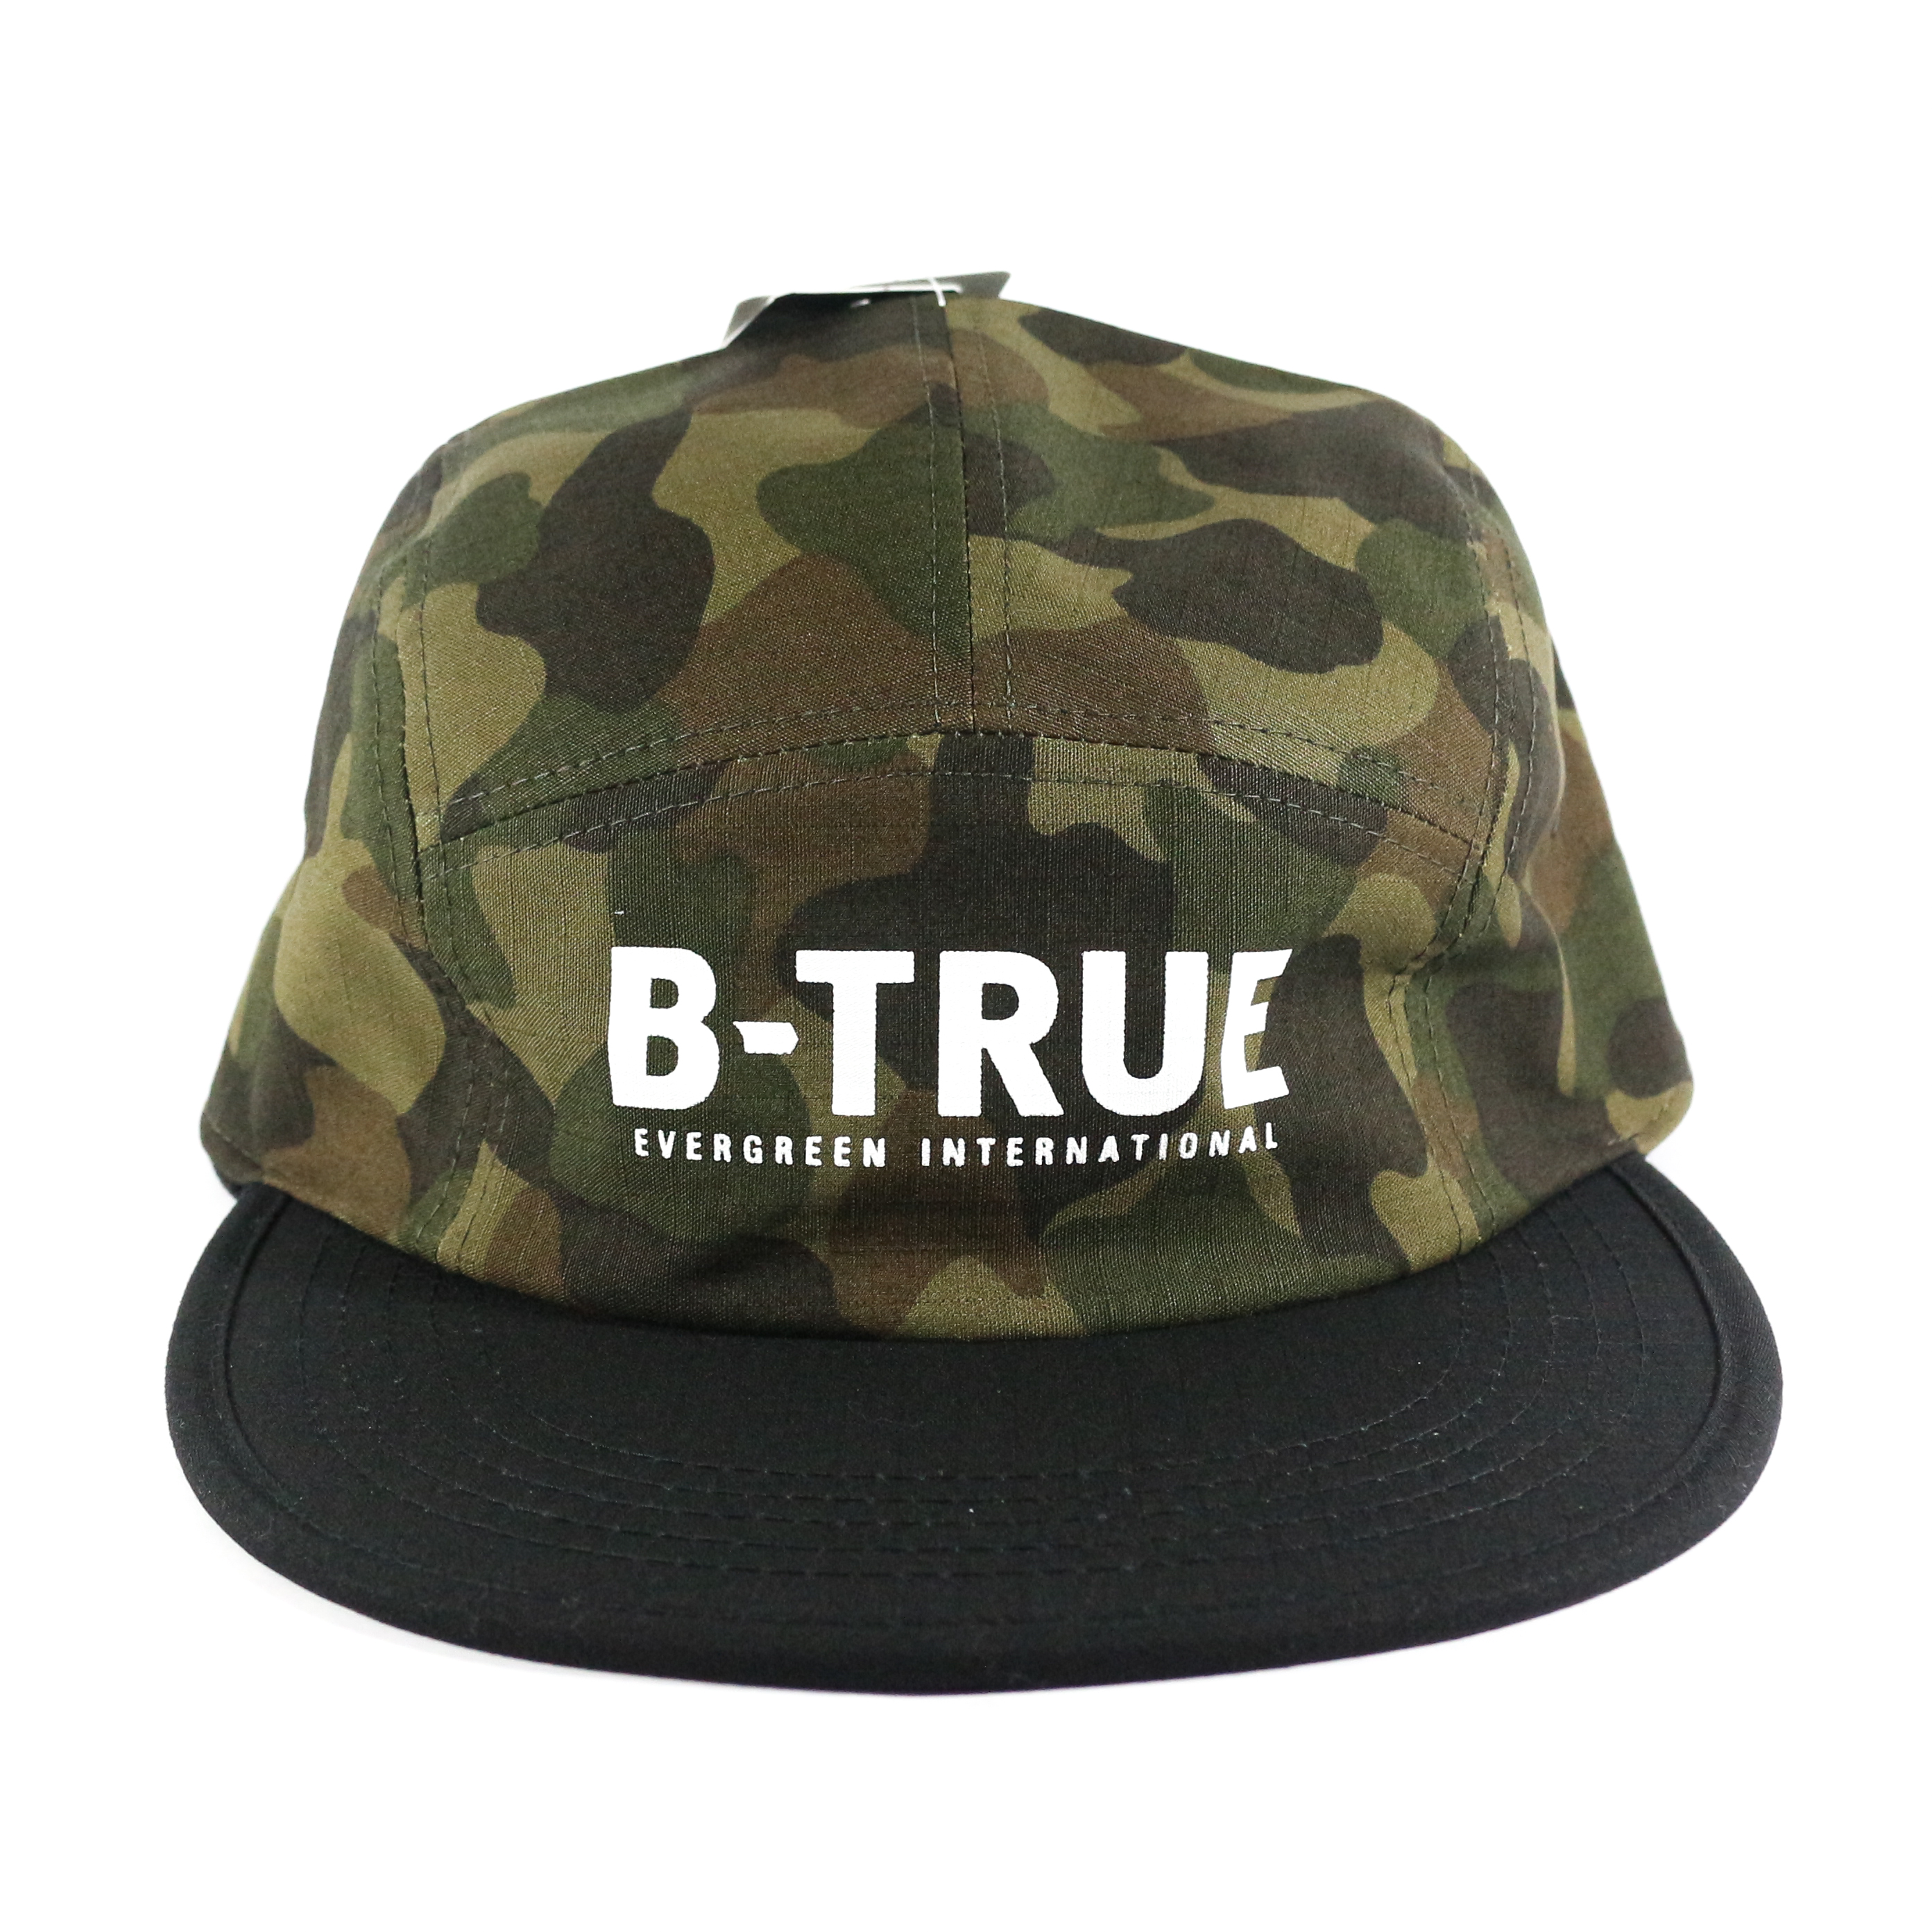 Evergreen Cap Jet Cap B-True Japan Free Size Green Camou (8845)